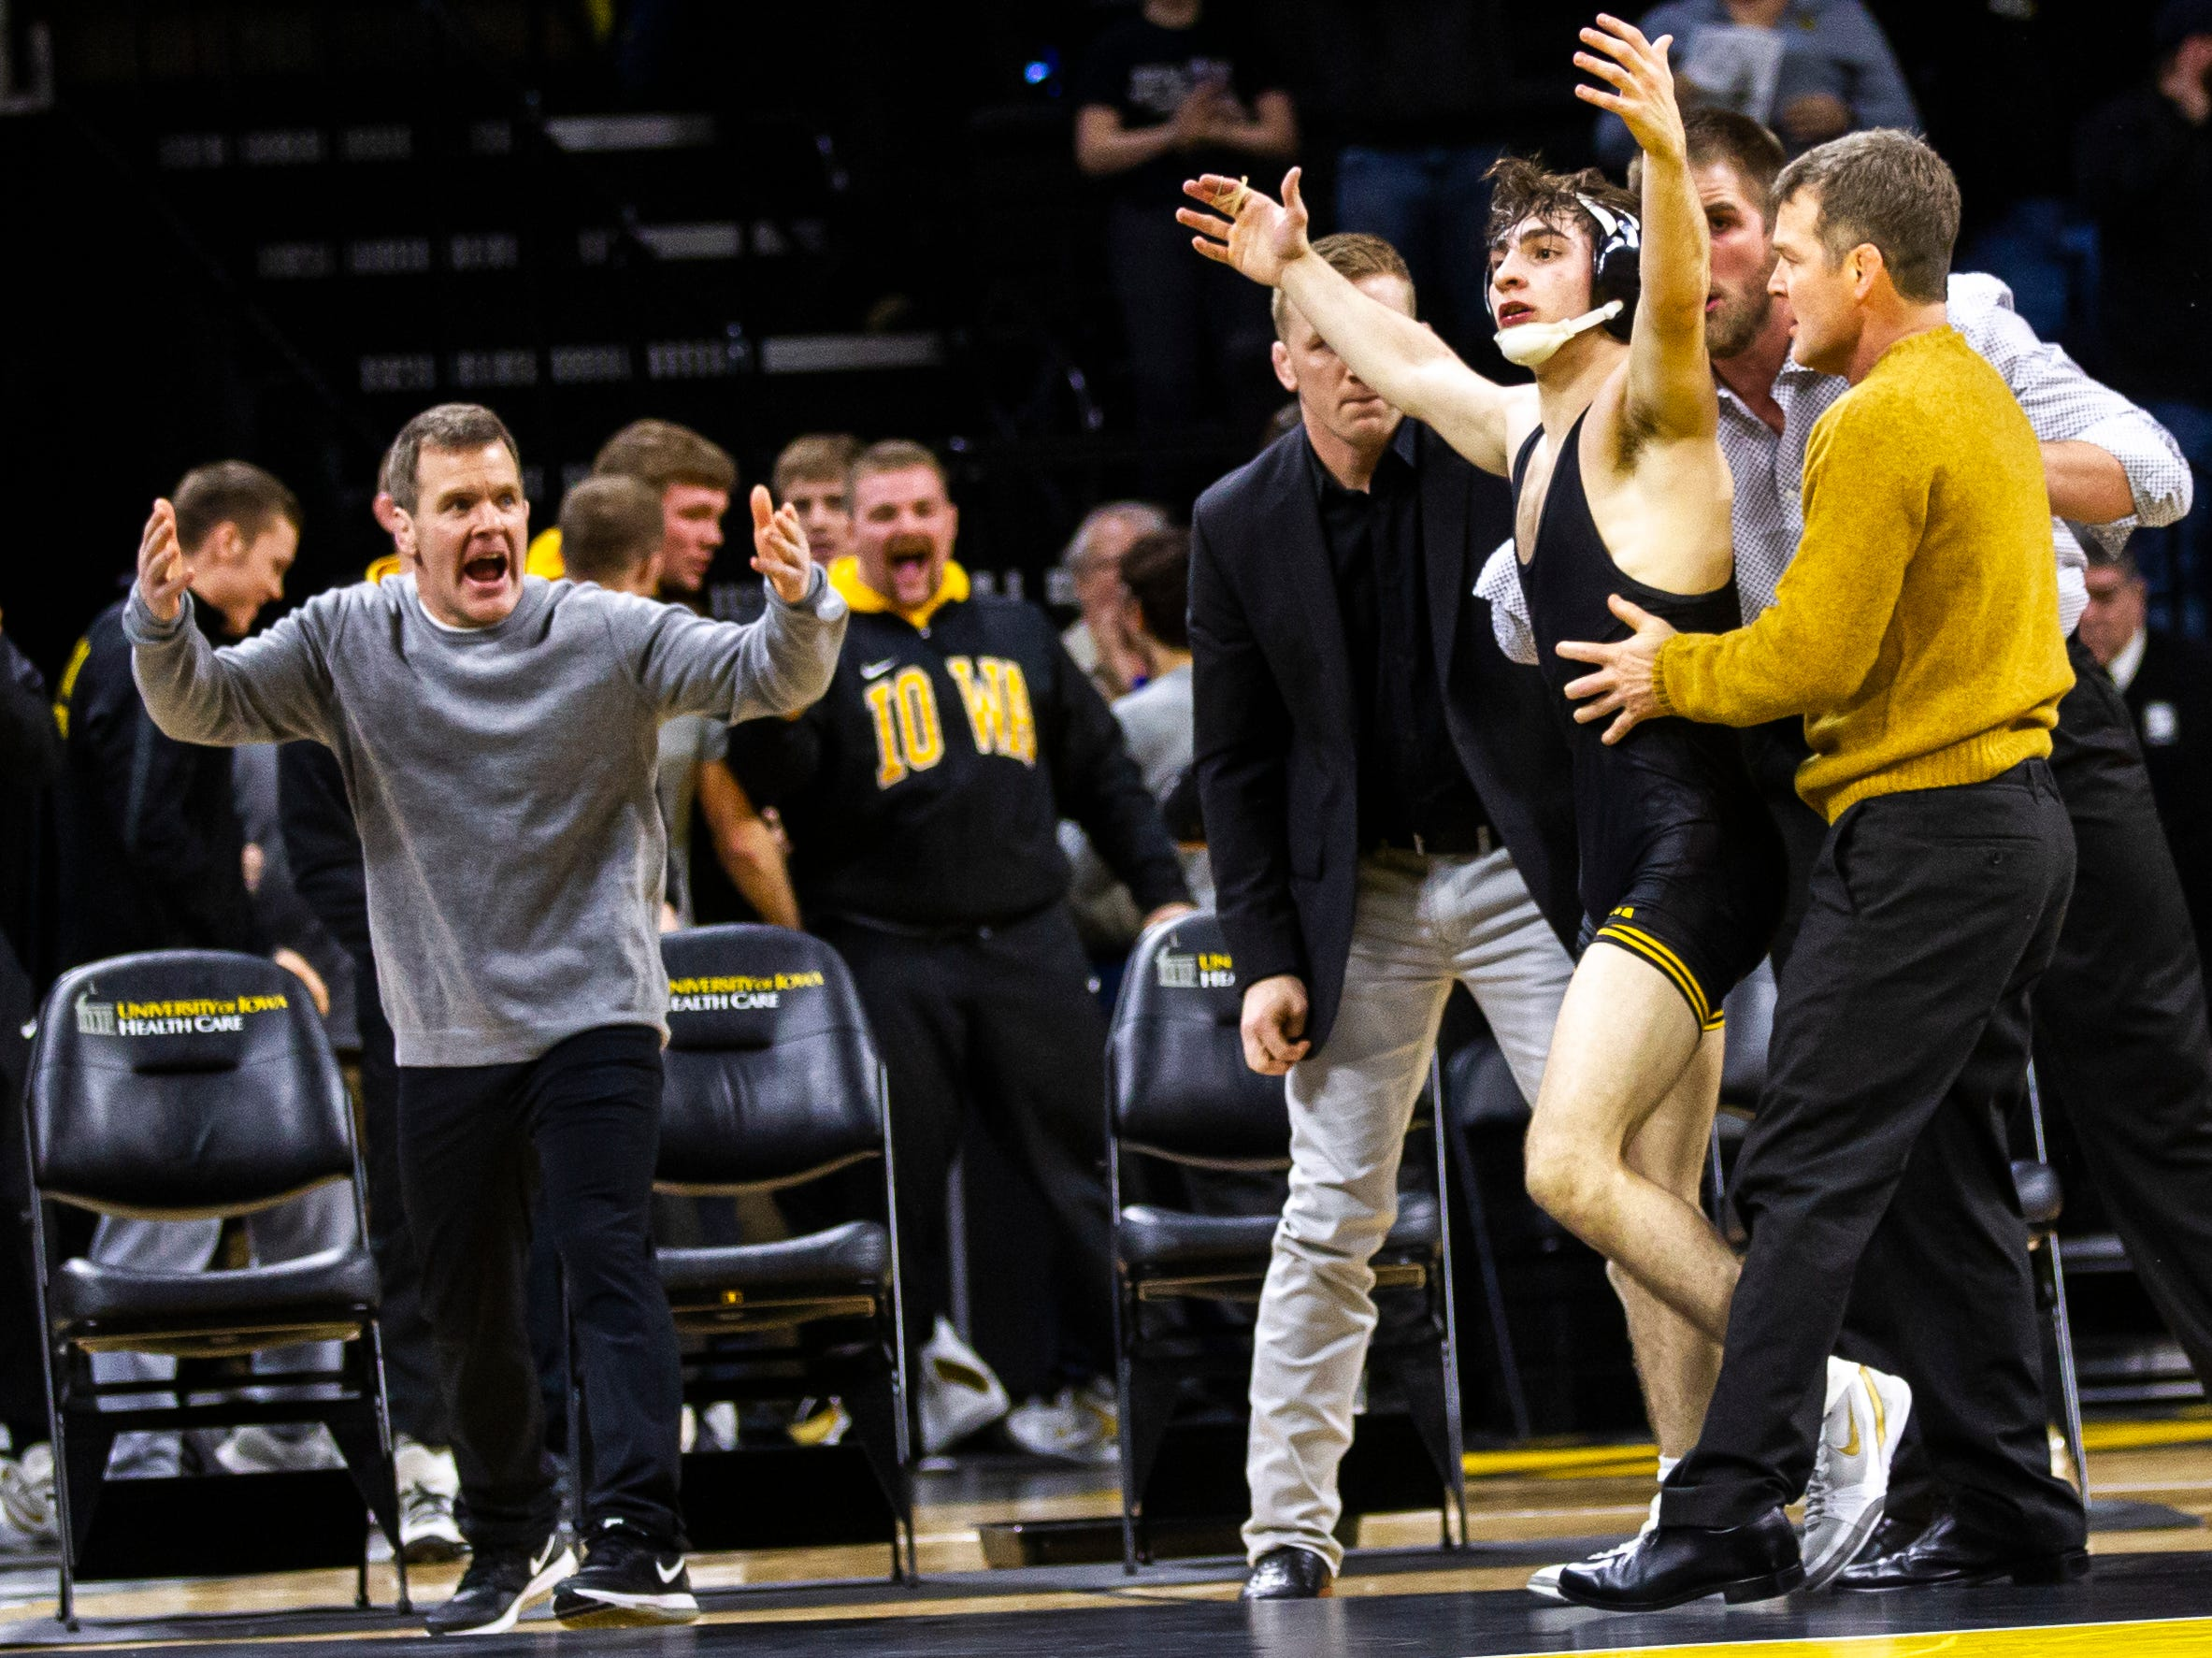 Wrestling: Austin DeSanto notches huge win as Iowa rolls over Rutgers